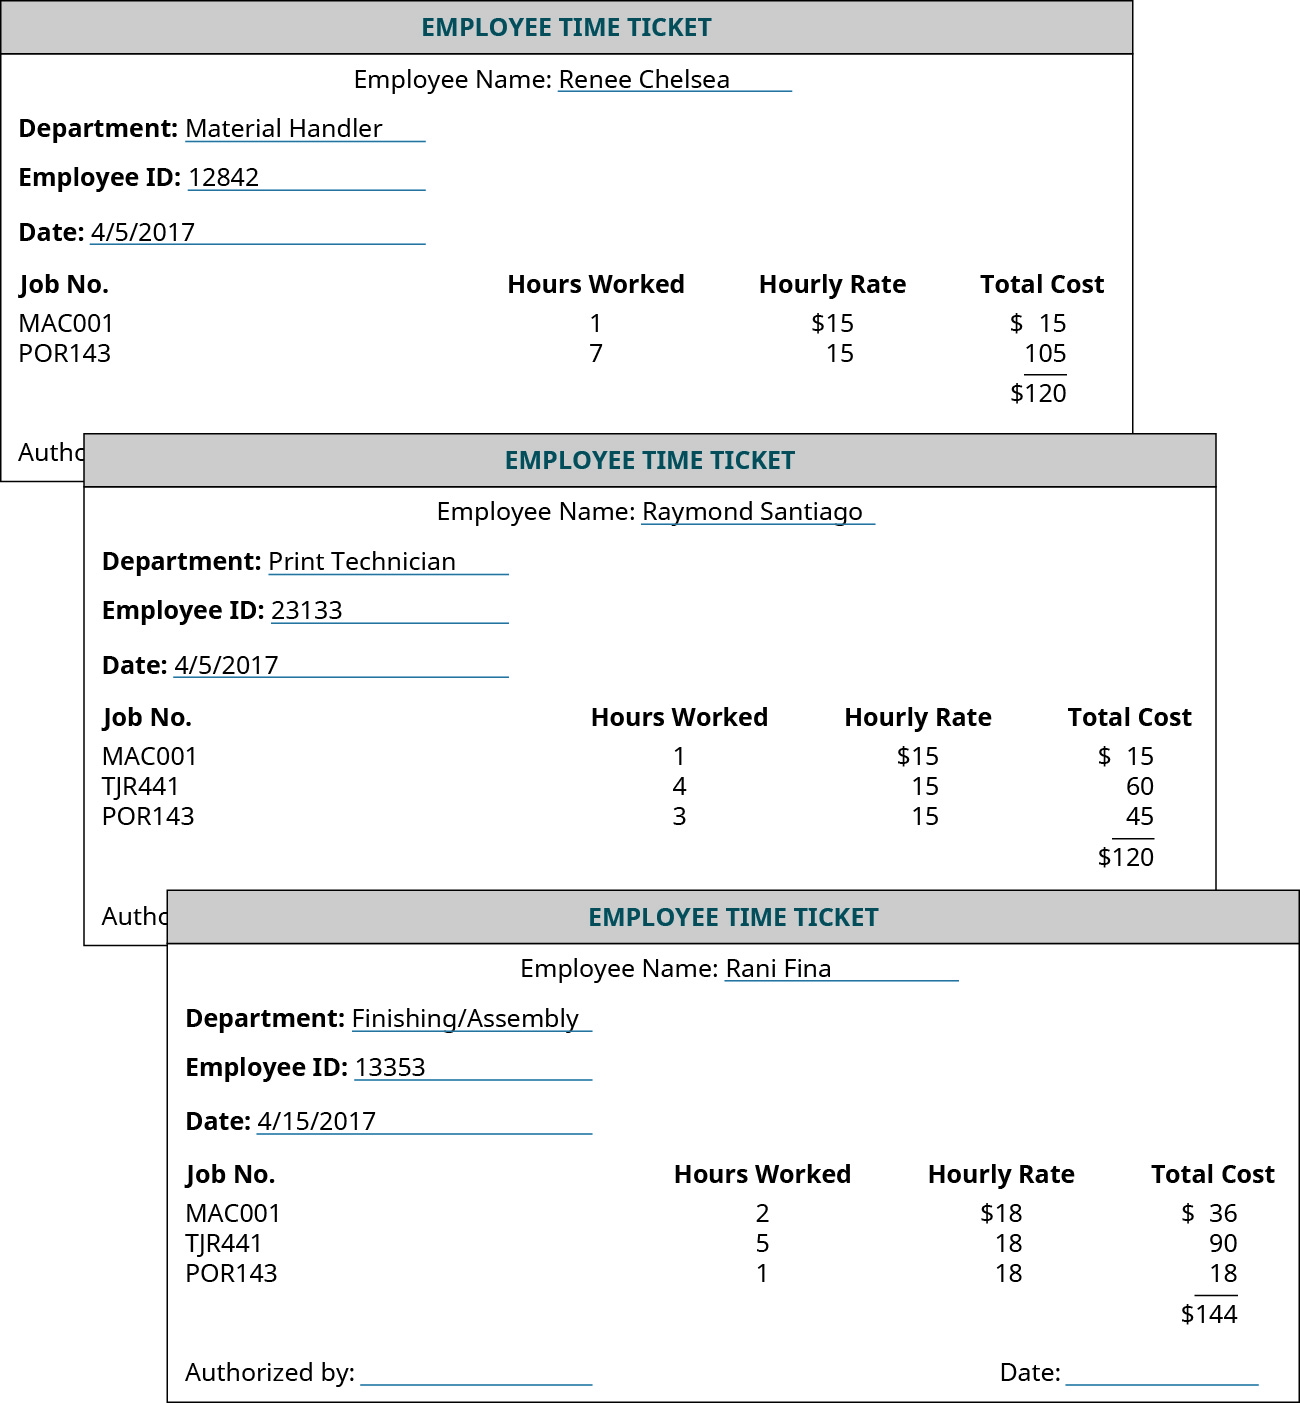 "Three forms labeled ""Employee Time Ticket."" They each have a place to fill out the Employee Name, Department, Employee ID, and Date. Then there are four columns the form with headings: ""Job No."", ""Hours Worked"", ""Hourly Rate"", and ""Total Cost"". The first ticket is Renee Chelsea, material handler, ID# 12842, 4/5/2017 with the following information: MAC001 1, 15, 15; POR143, 7,15,105. Her total cost is added to be 120. The second ticket is Raymond Santiago, Print Technician, ID#23133, 4/5/2017 with the following information: MAC001 1, 15, 15; TJR441 4, 15, 60, POR143, 3, 15, 45. His total is 120. The last ticket is Rani Fina, Finishing/Assembly, ID#13353, 4/15/2017 with the following information: MAC001, 2, 18, 36; TJR441 5, 18, 90; POR143, 1, 18, 18; for a total of 144. Each ticket has a place on the bottom to be authorized with a signature and a date."